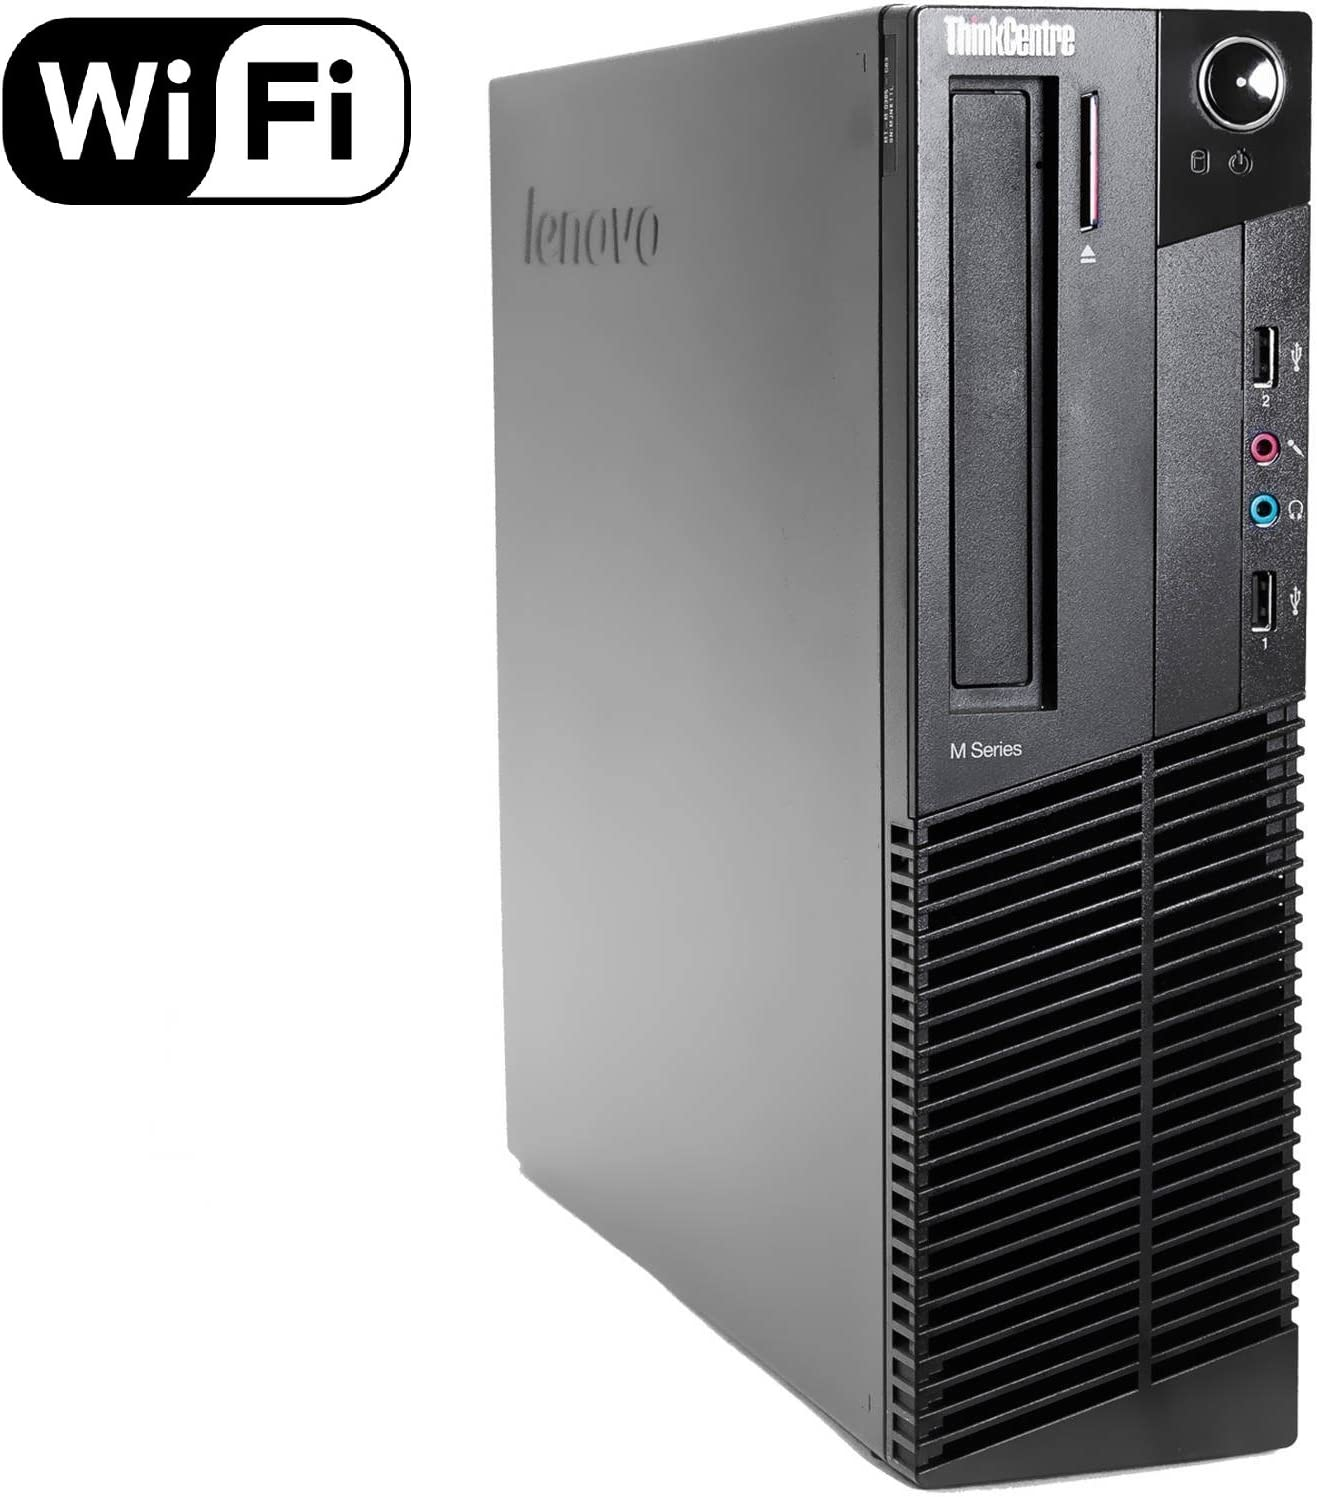 Lenovo ThinkCentre M92p High Performance Small Factor Desktop Computer, Intel Core i5 CPU up to 3.6GHz, 8GB DDR3 RAM, 500GB HDD, DVDRW, Windows 10 Professional (Renewed)